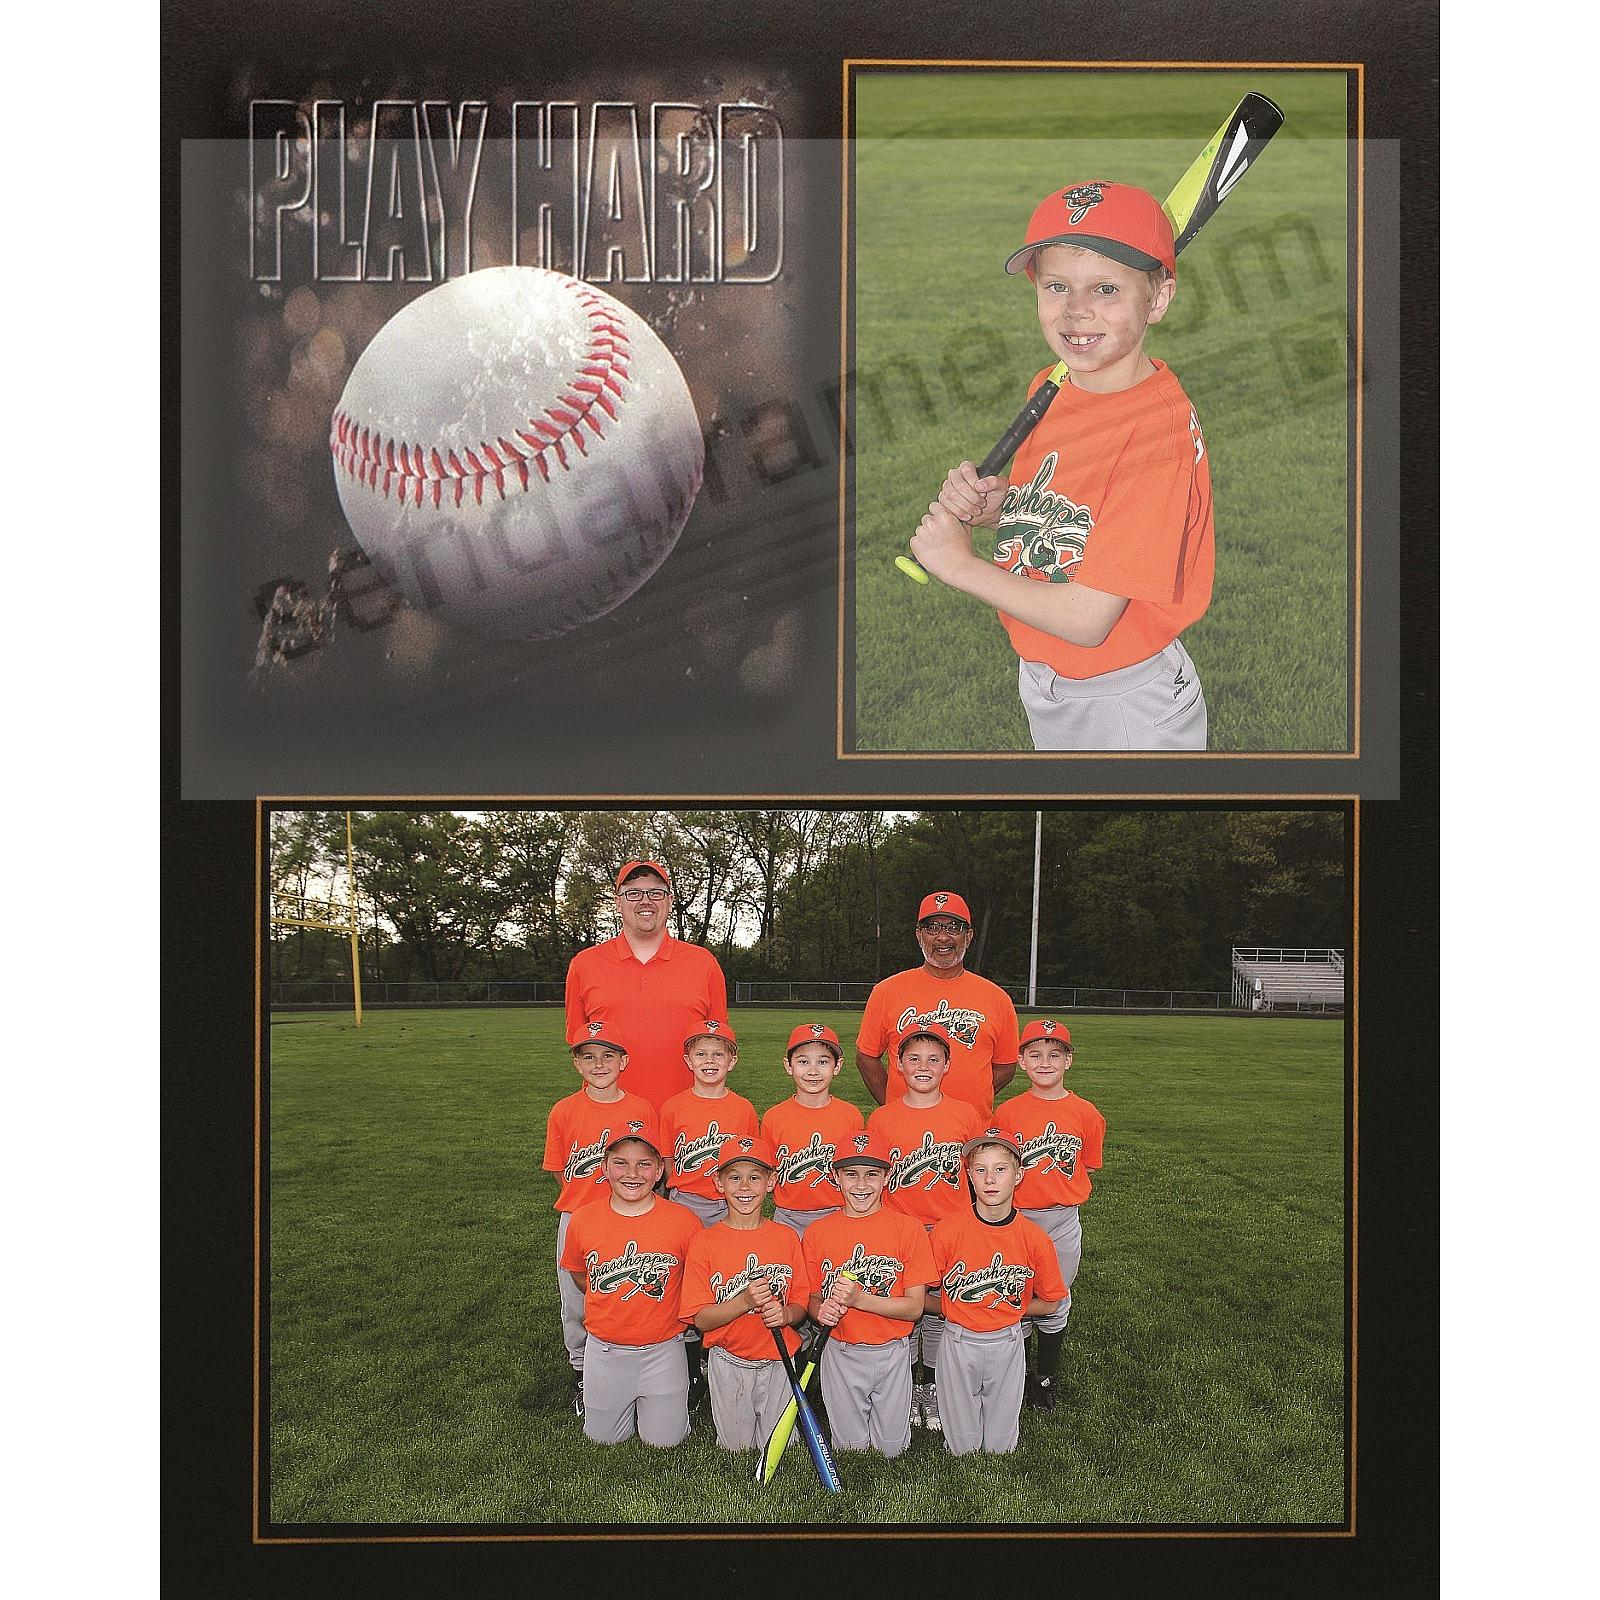 PLAY HARD BASEBALL Player/Team 7x5/3½x5 SPORTS MATES cardstock double frame (sold in 10's)